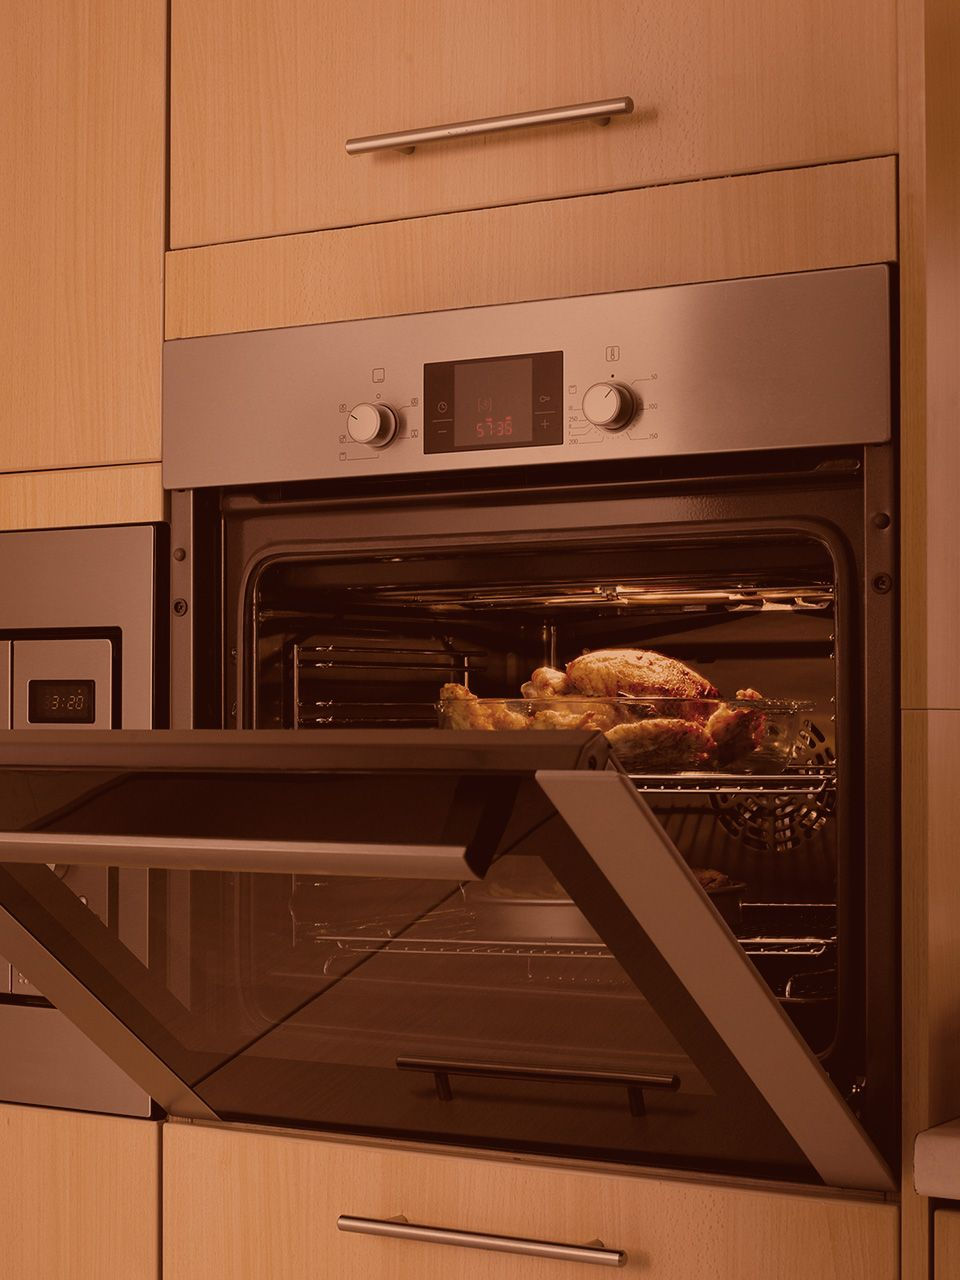 kitchenaid microwave convection oven how to use